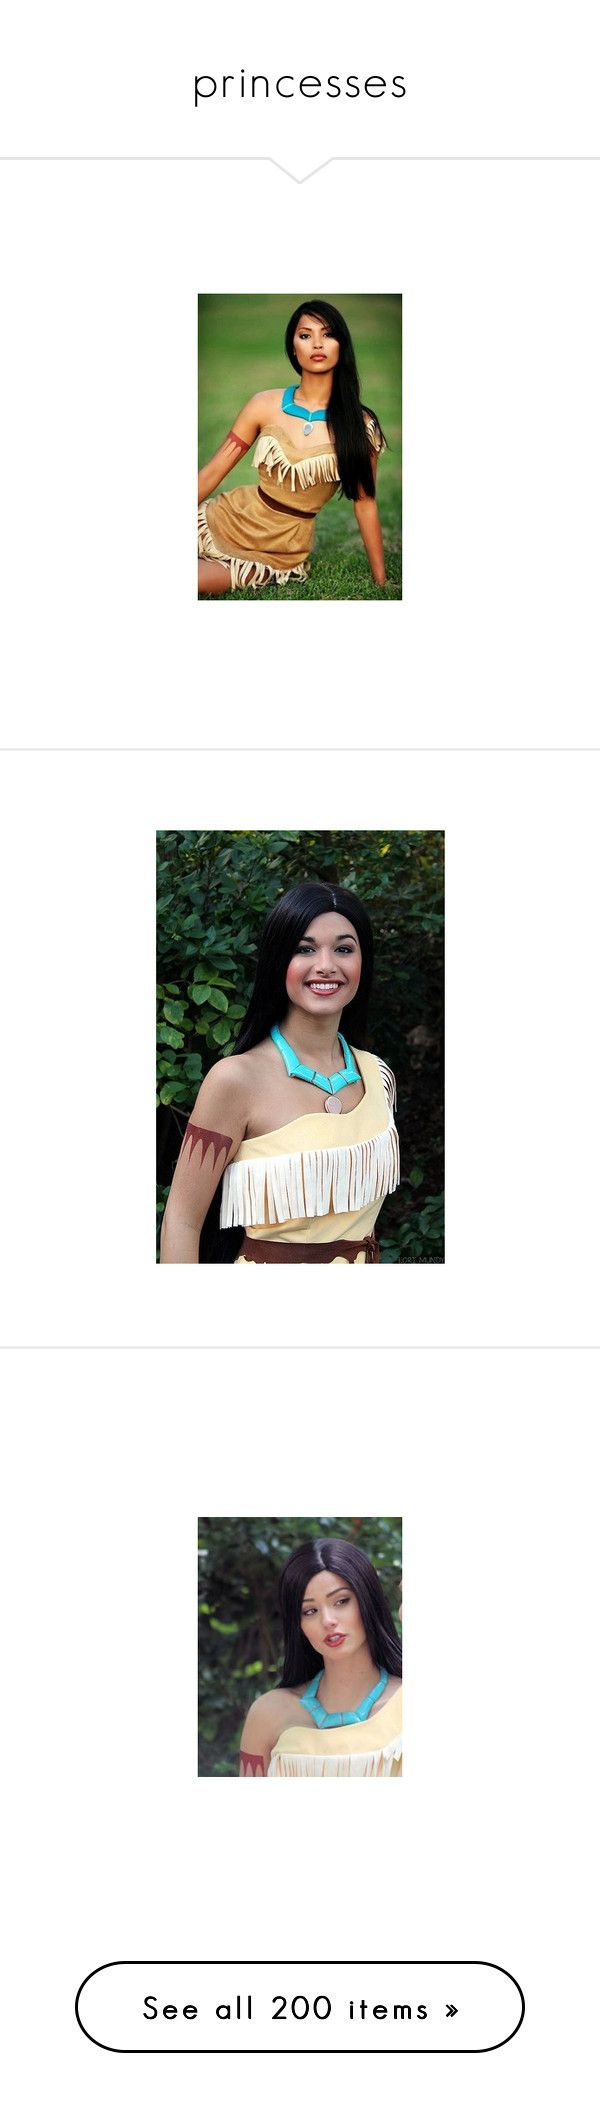 """""""princesses"""" by hogwartsdragoness ❤ liked on Polyvore featuring pocahontas, characters, disney, naya rivera, costumes, halloween costumes, pocahontas costume, sexy halloween costumes, adult indian costume and sexy cowgirl costume"""